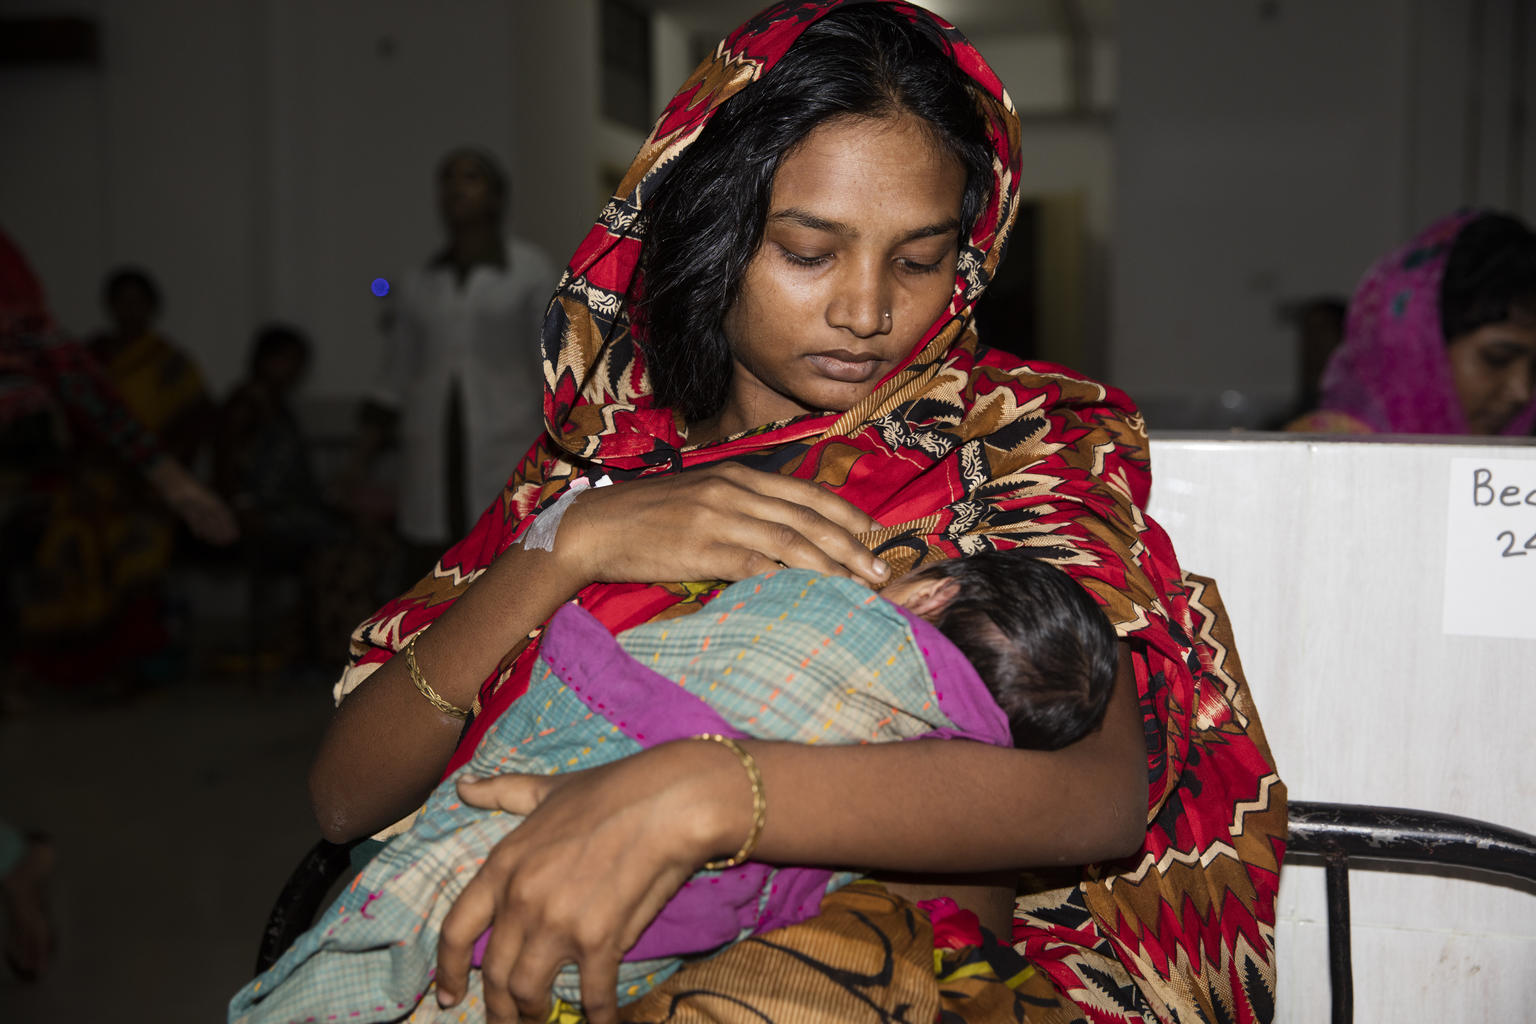 Ayesha Siddqa (18) practices breast feed her child in the women ward at Cox's Bazar Medical Hospital on 19 October 2017 in Cox's Bazar.